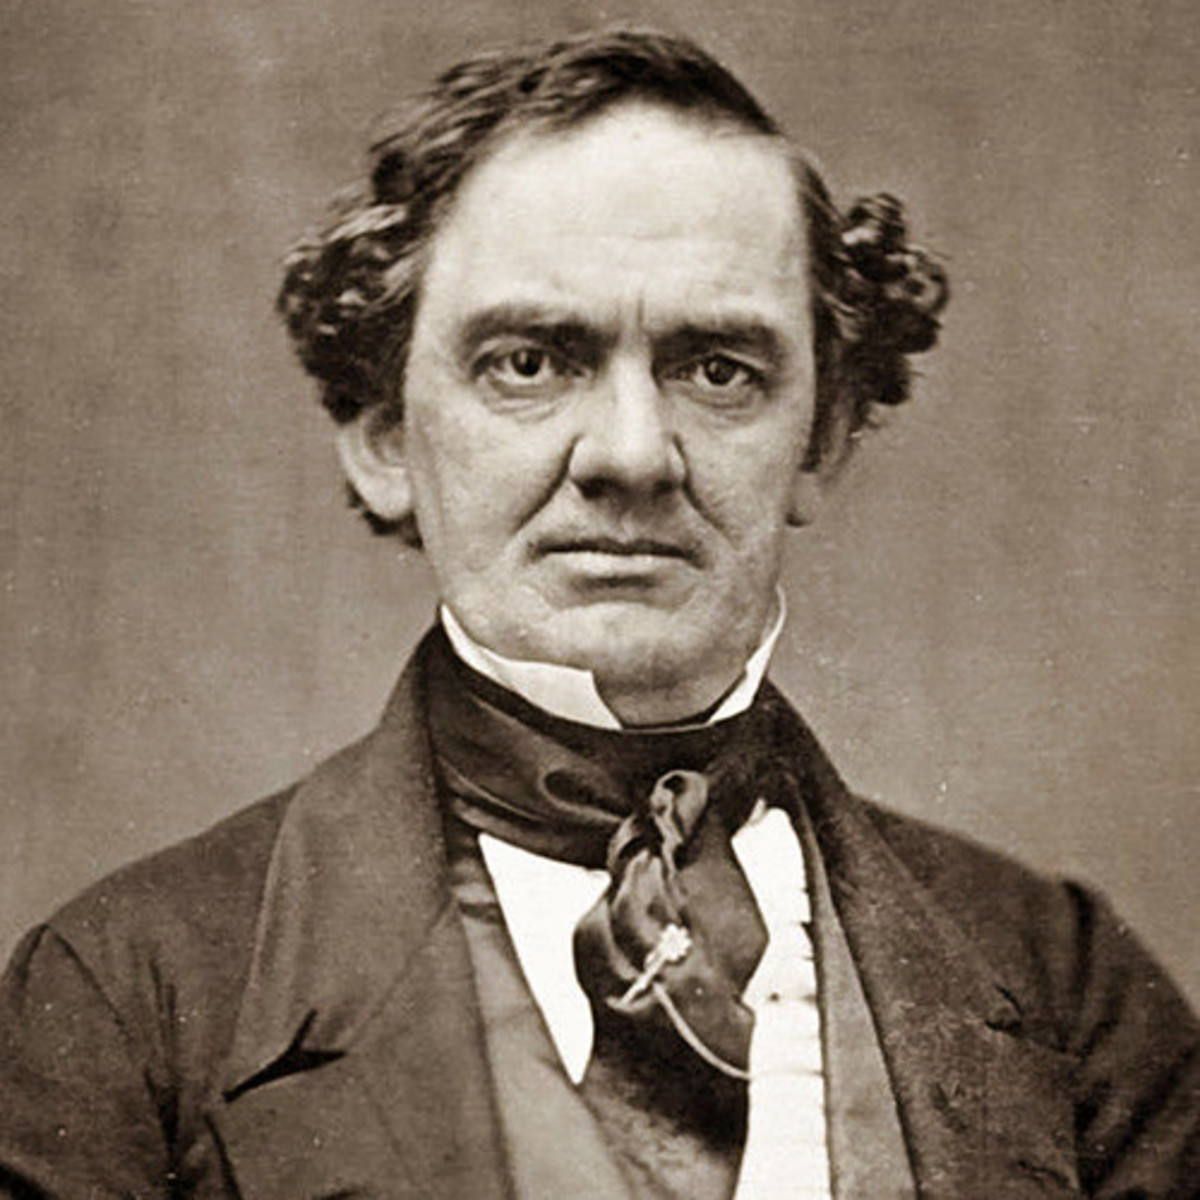 P.T. Barnum - Quotes, Circus & Family - Biography